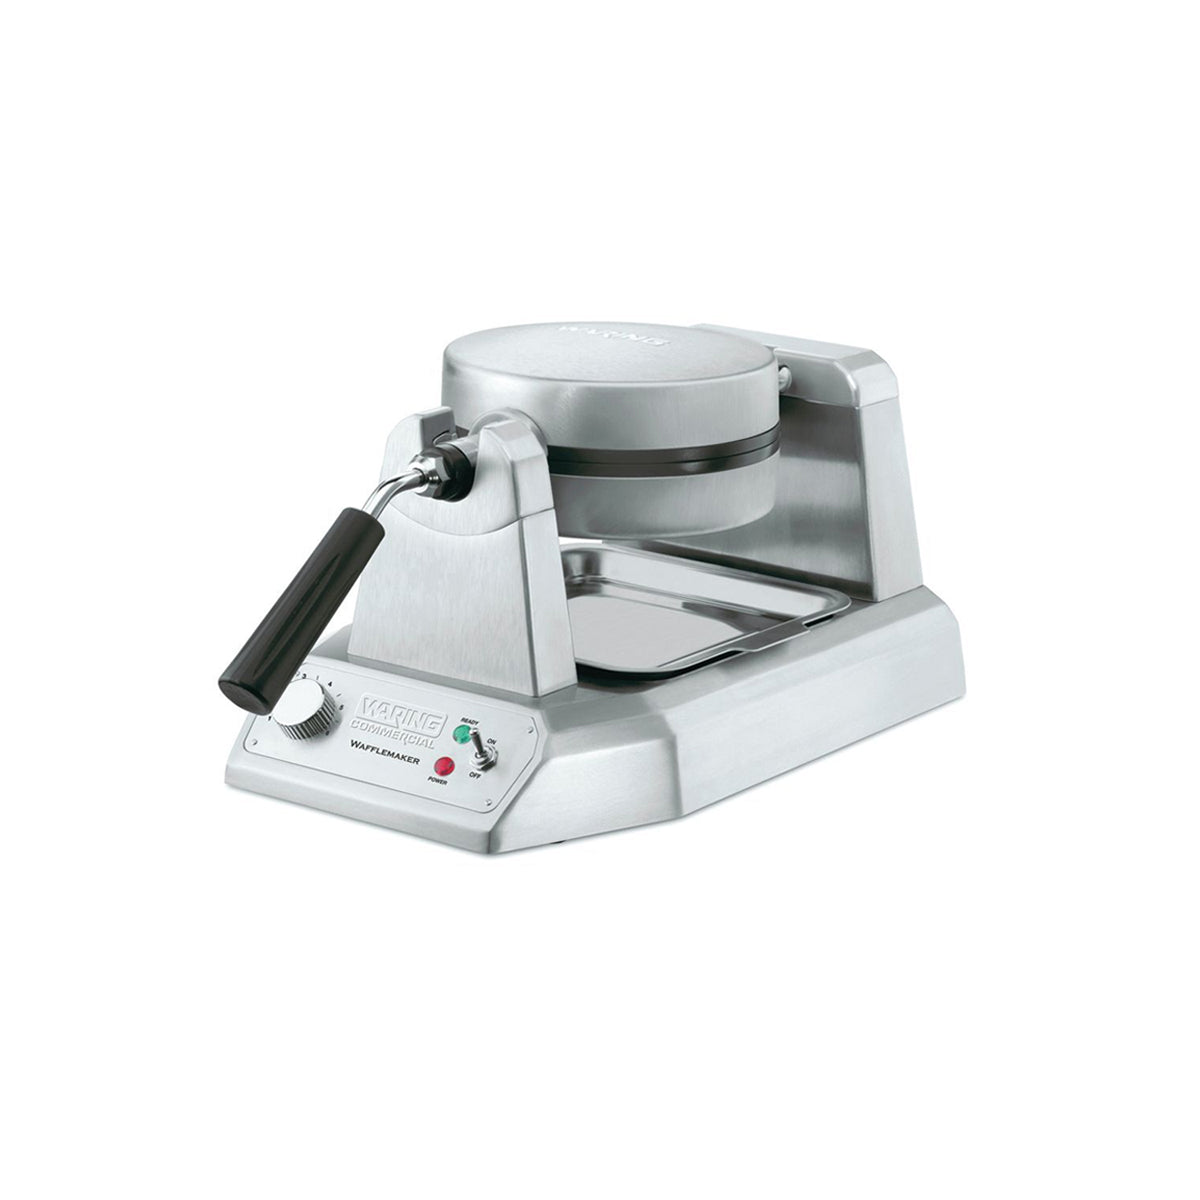 Waring Commercial Heavy Duty Classic Waffle Maker